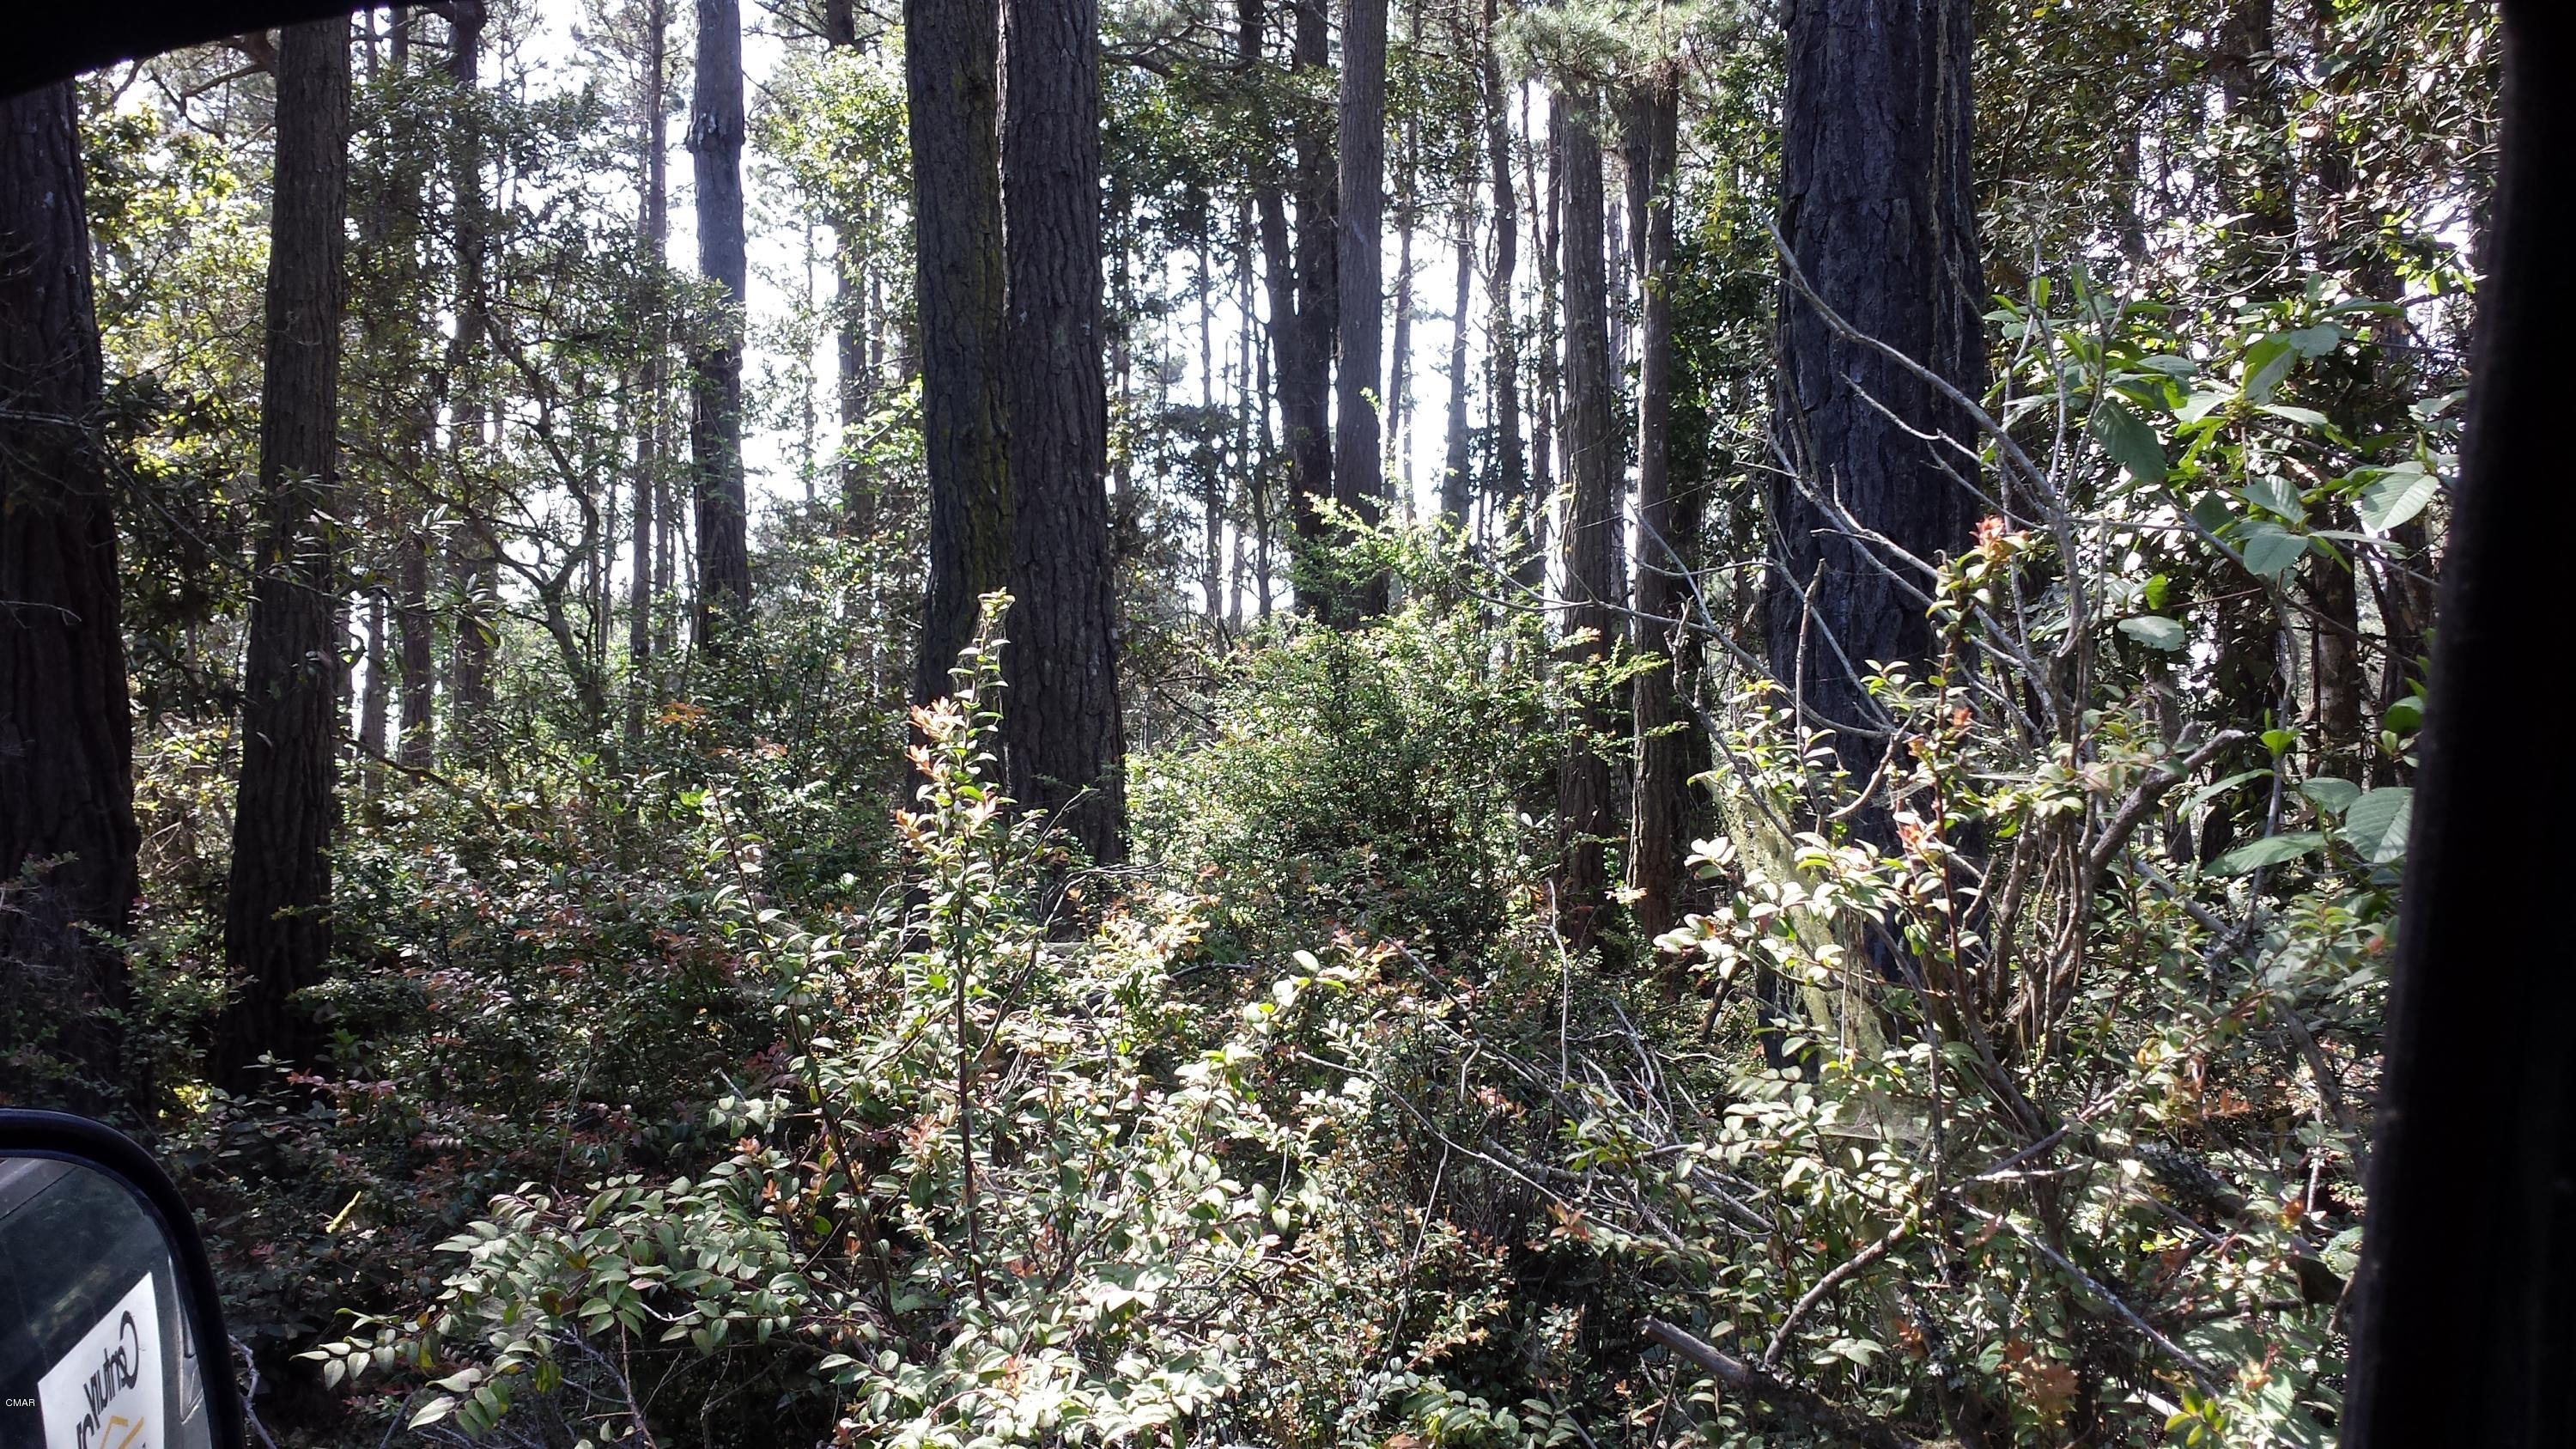 This 6.26 acre bare land is grown in with dense shrubbery for a private home building site. Country feel though close to Fort Bragg and Mendocino. This sunny parcel in the coastal zone is priced to sell.